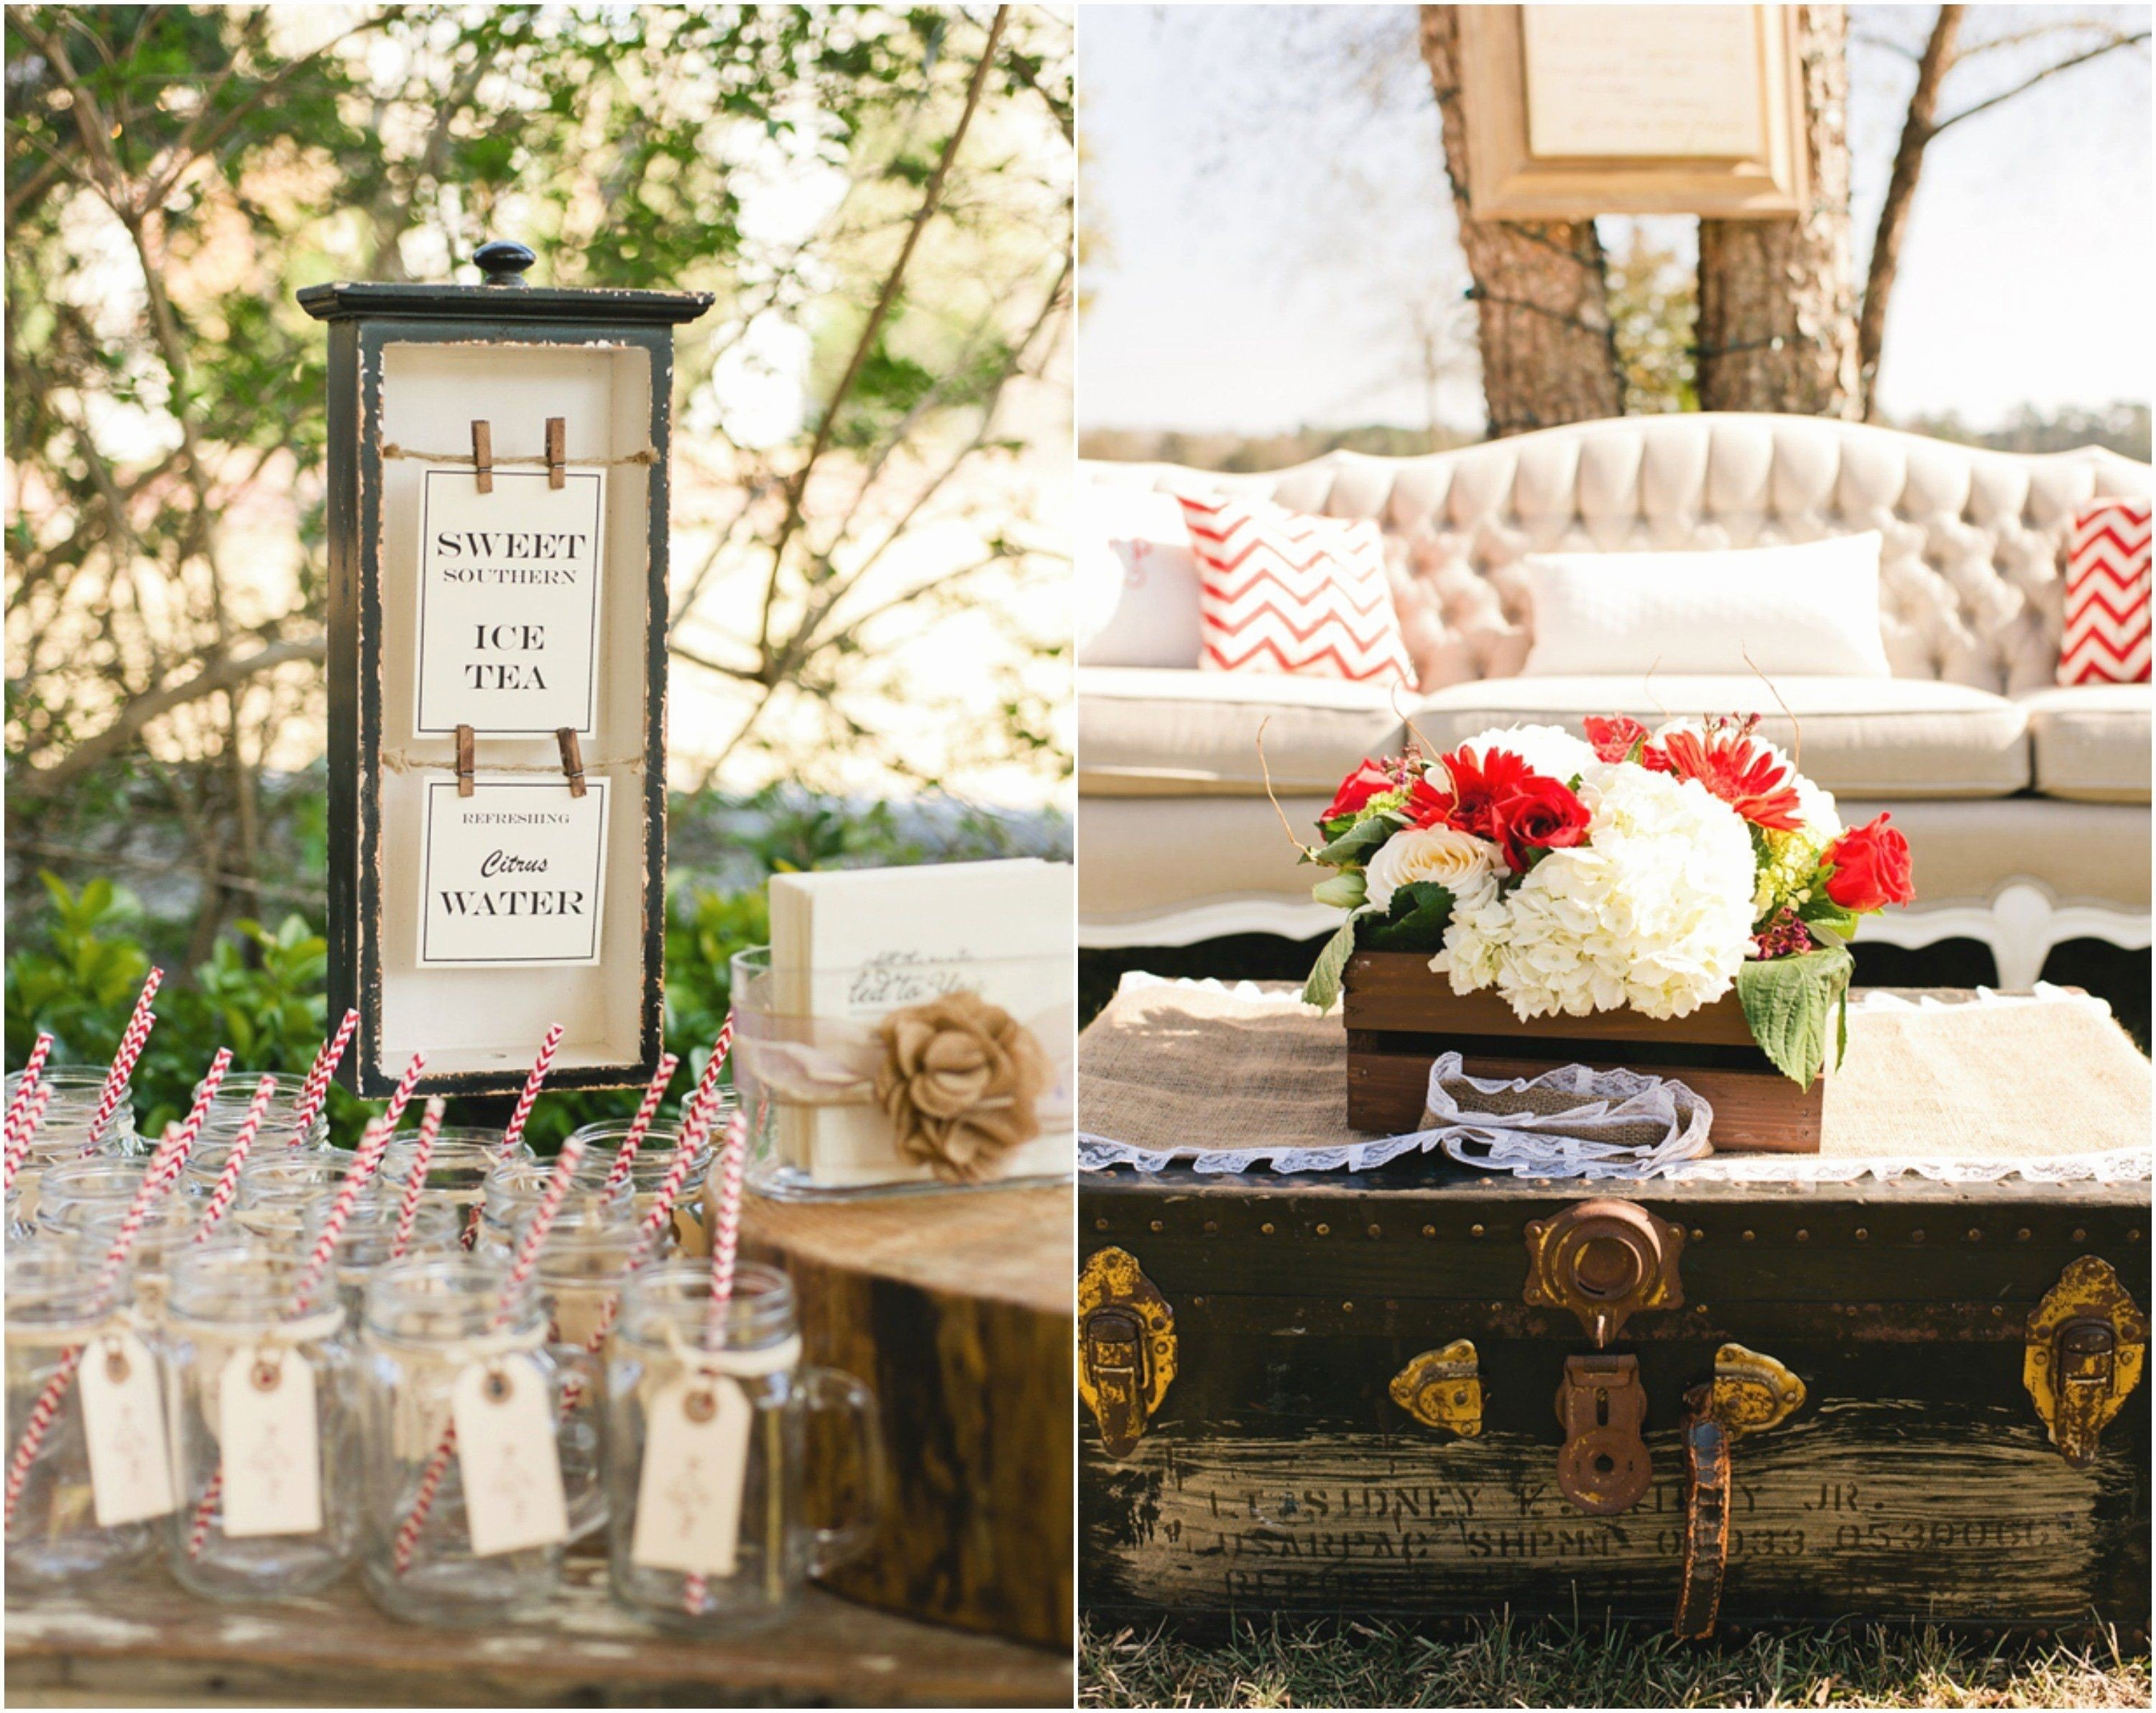 10 Amazing Country Wedding Ideas For Fall rustic wedding decorations luxury country wedding decorations ideas 2021